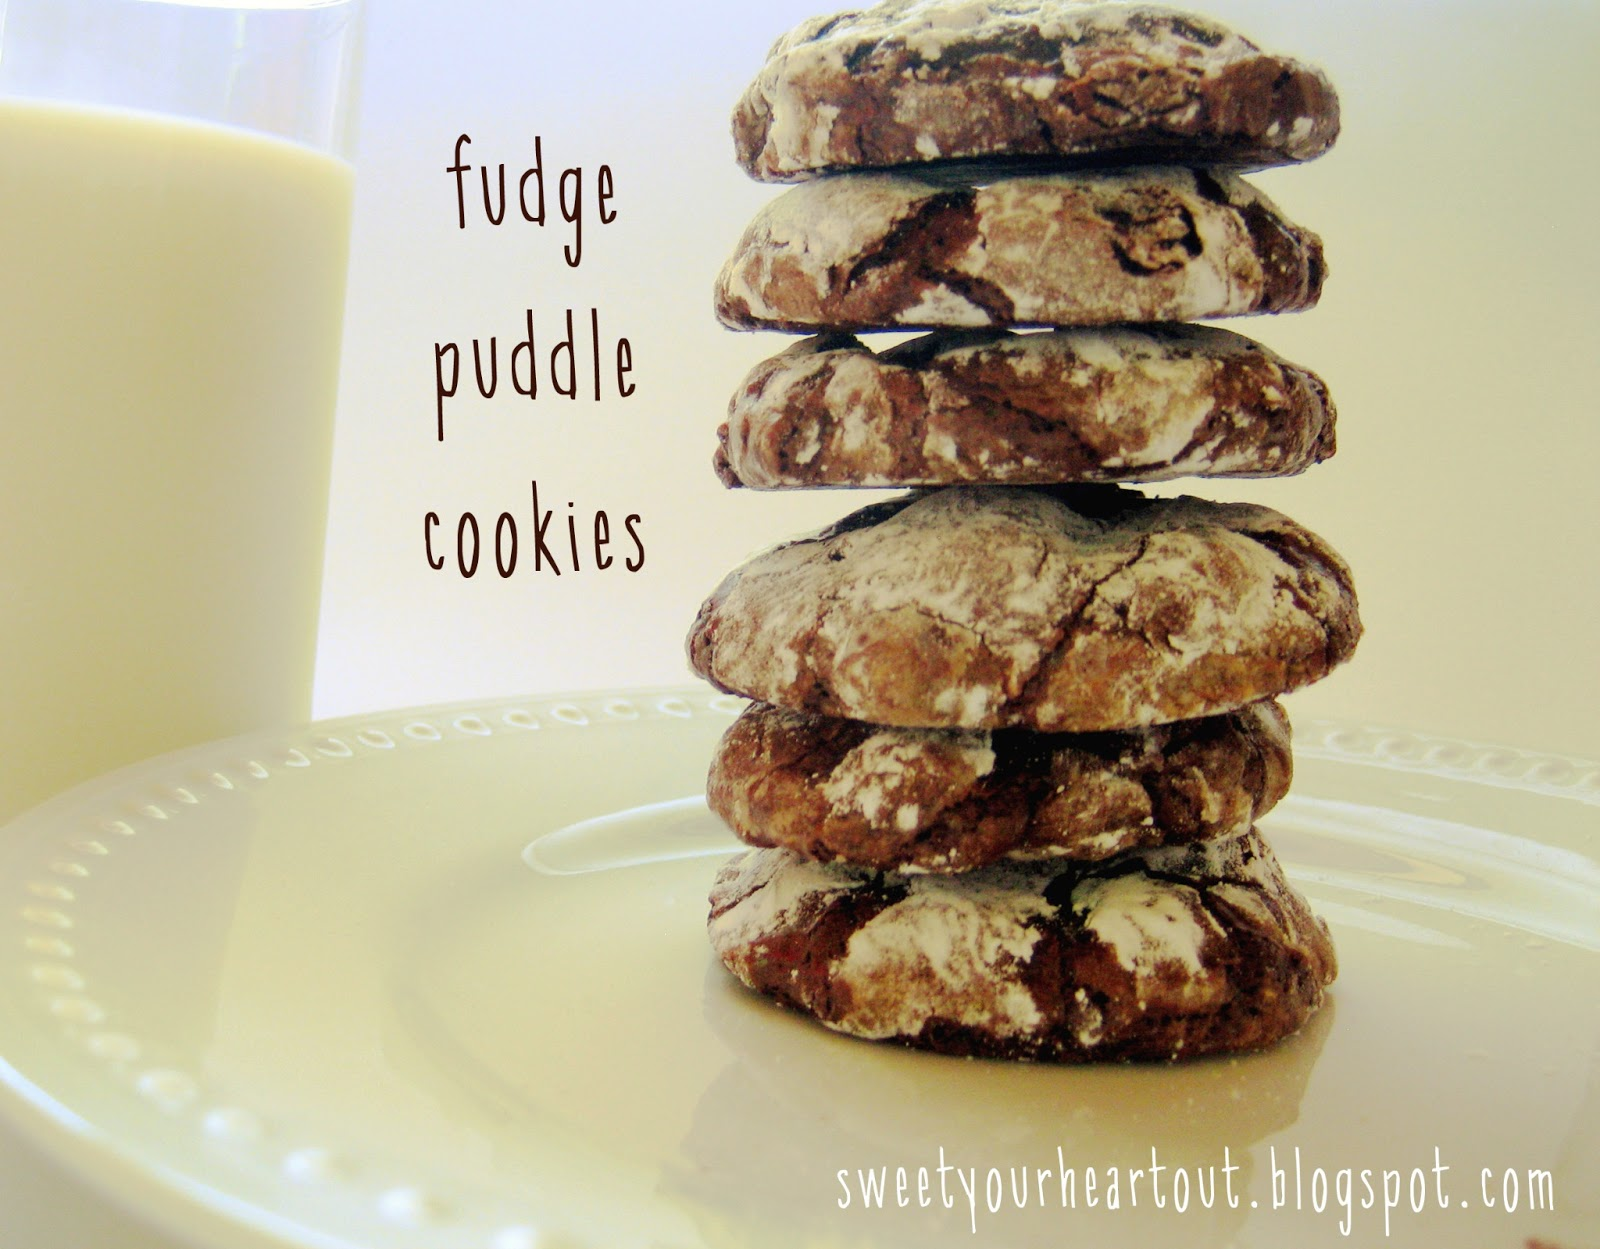 Sweet Your Heart Out: Fudge Puddle Cookies (gluten free!)